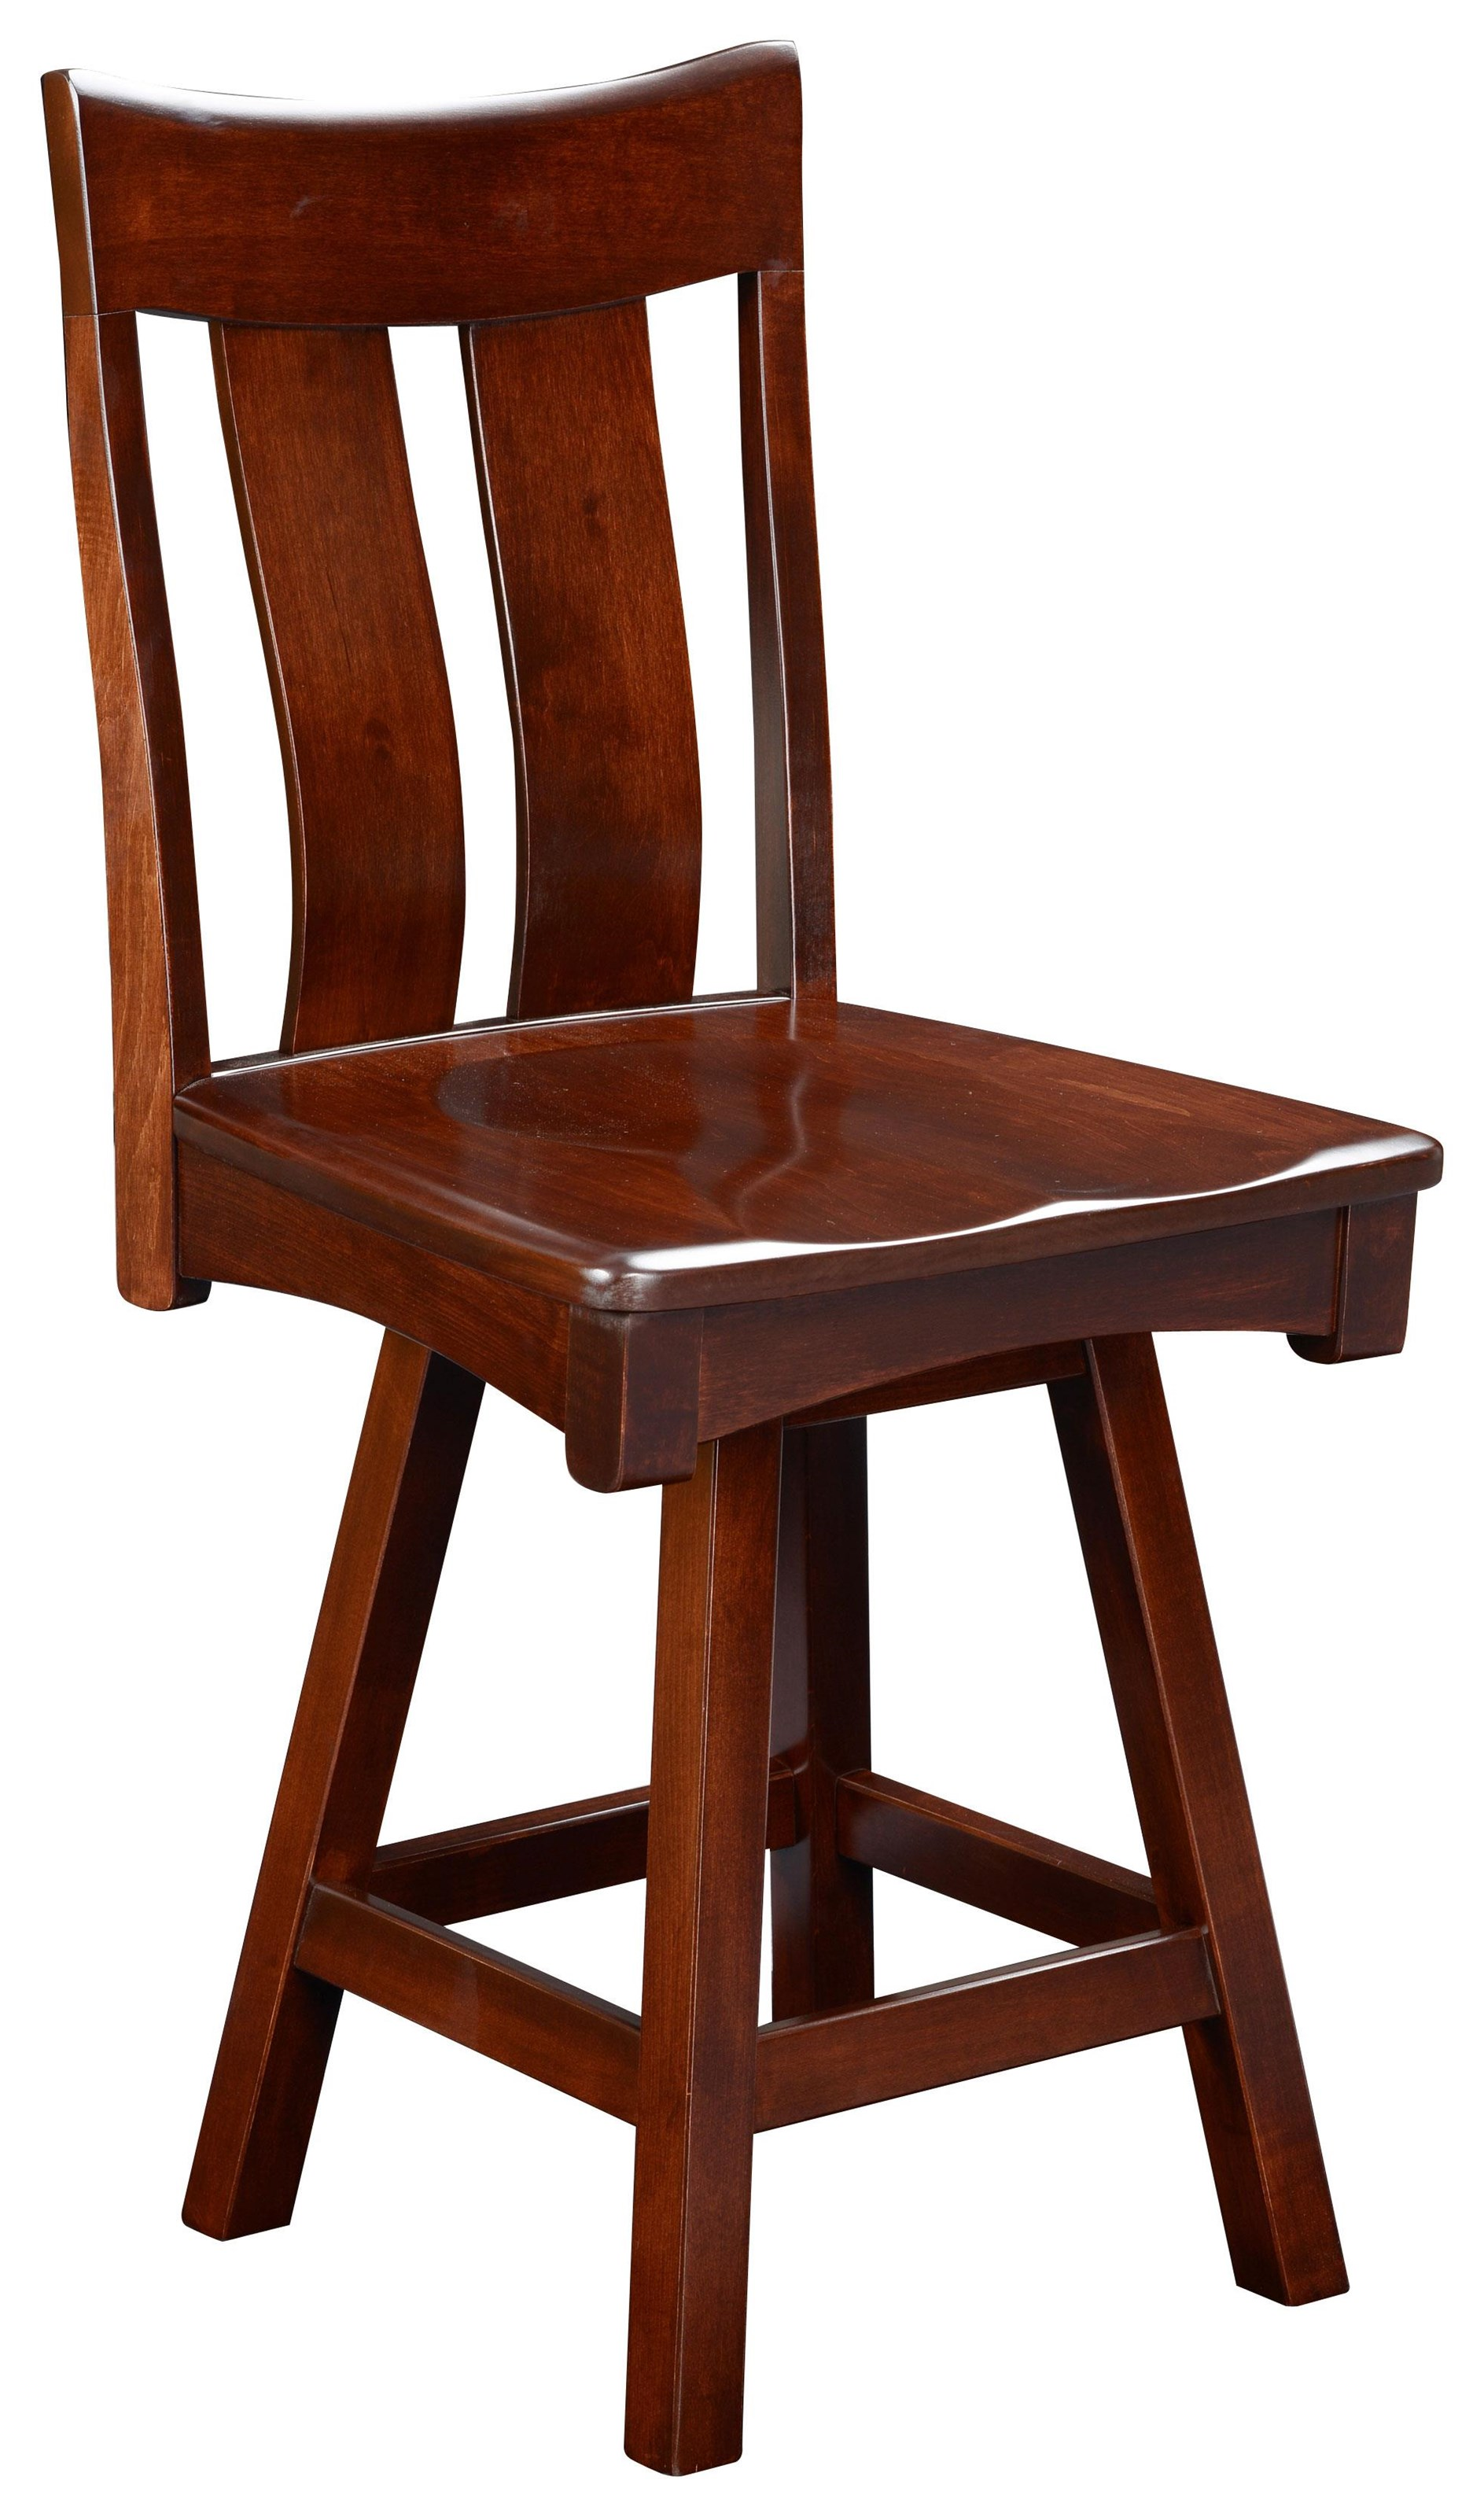 """Galion G2 24"""" Swivel Stool by Wengerd Wood Products at Wayside Furniture"""